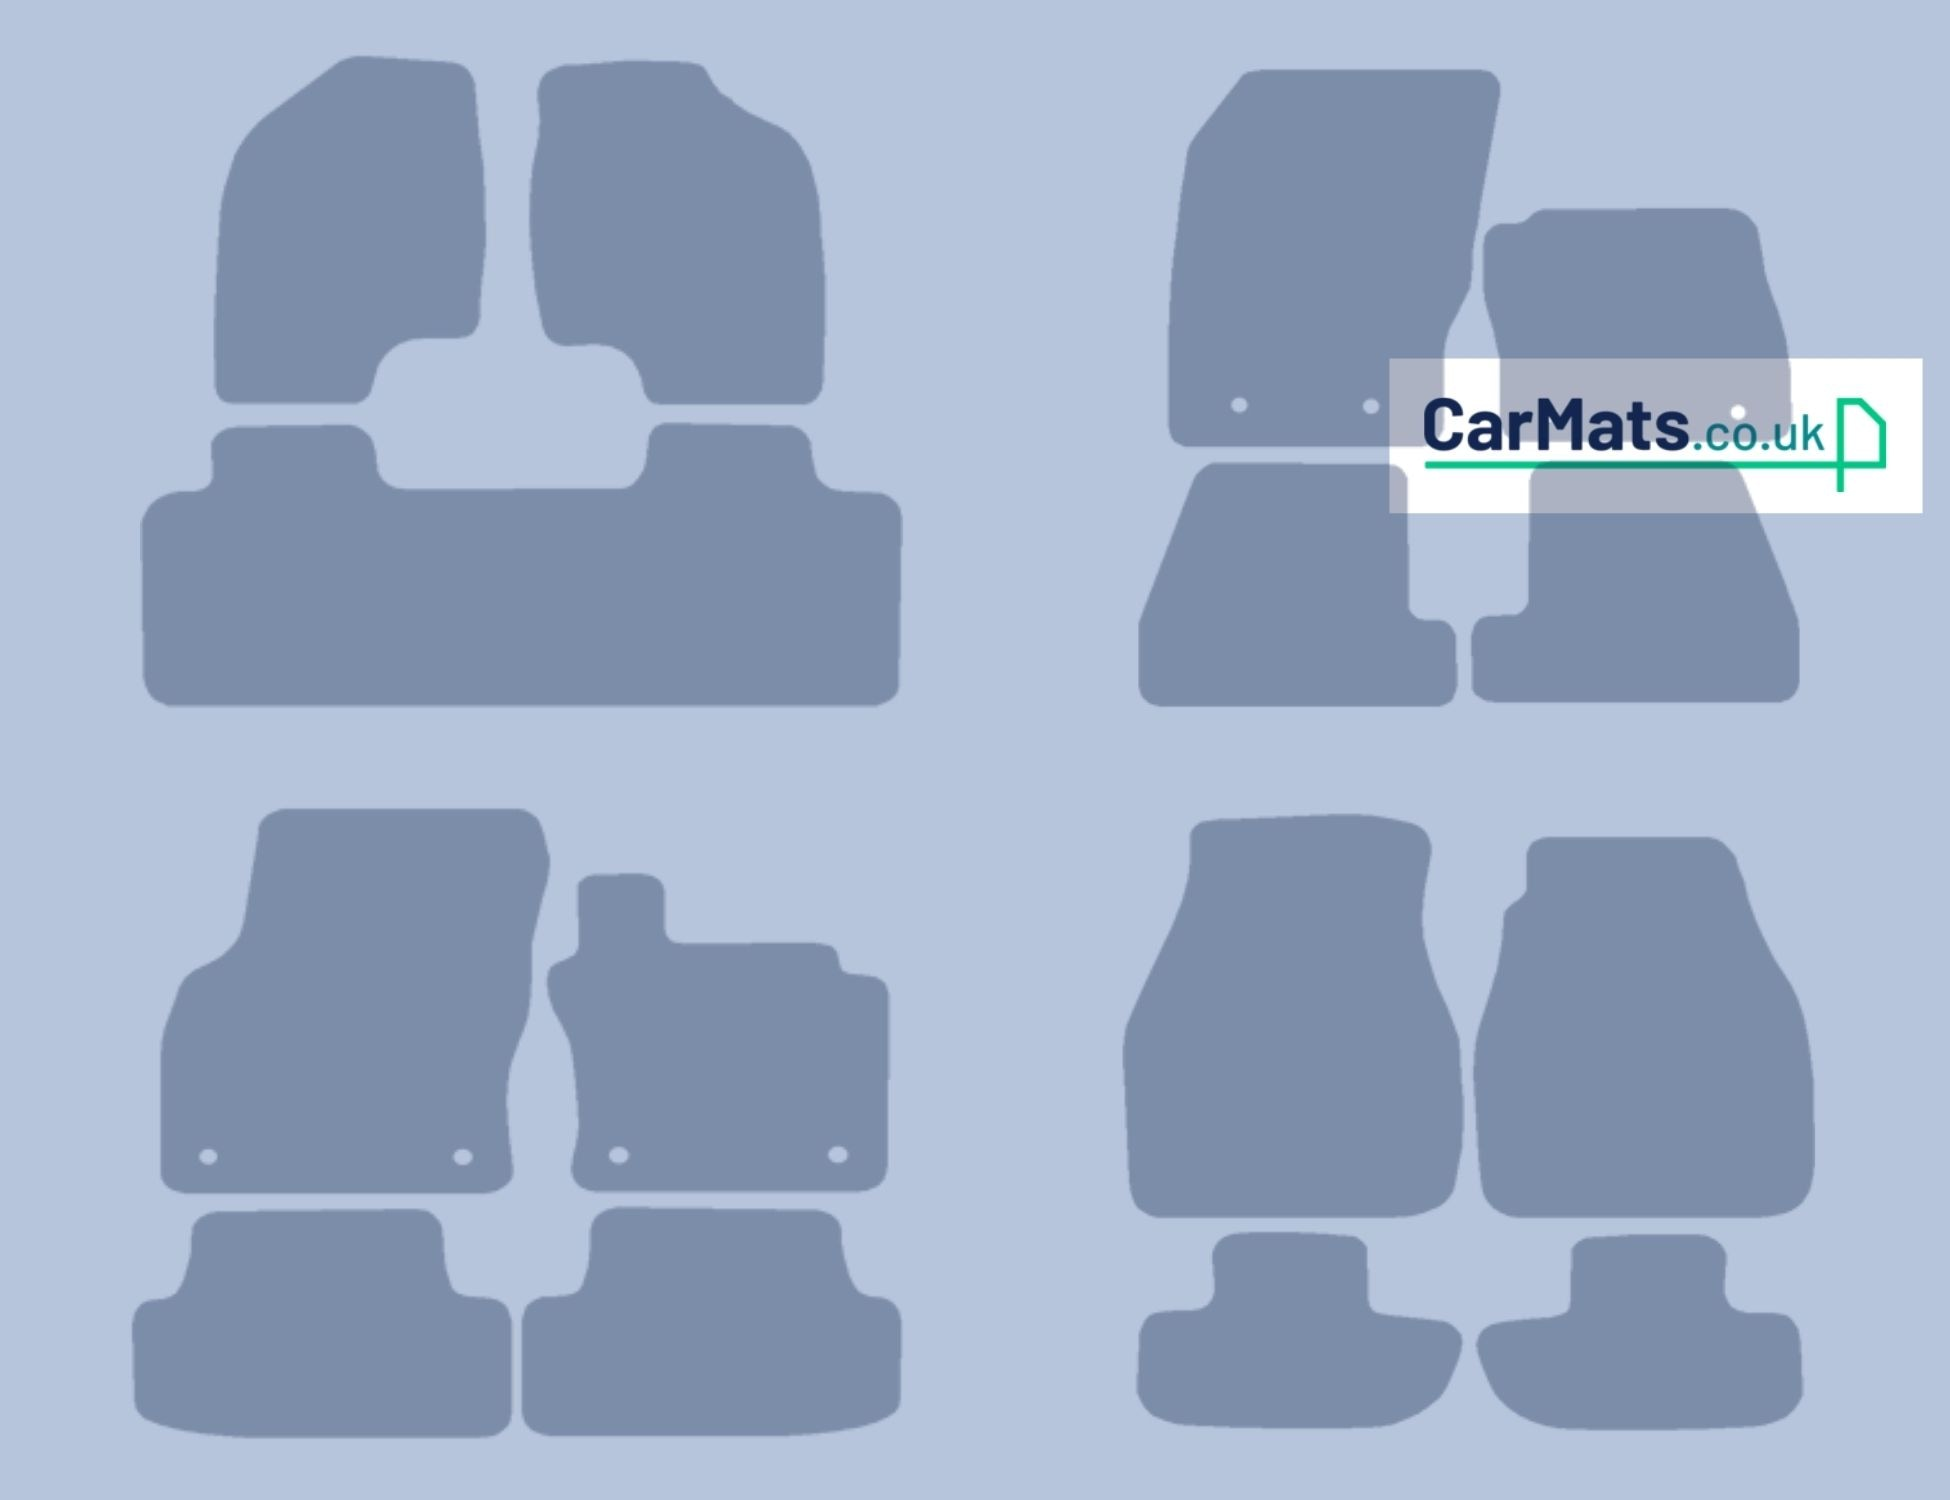 Carmats.co.uk Focused Heavily on Company Reviews